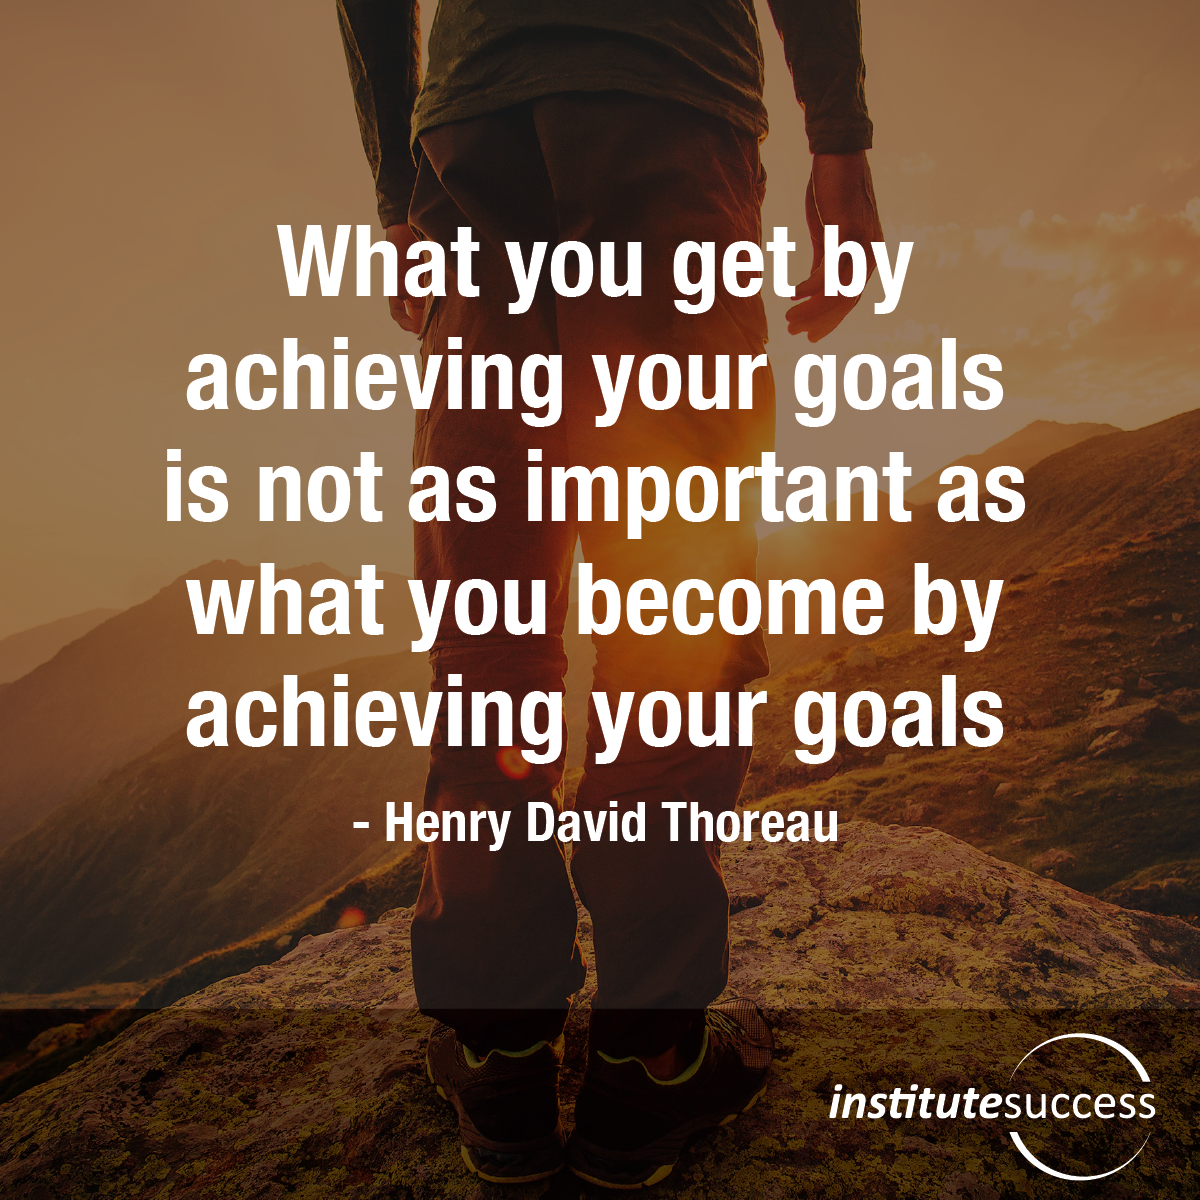 What you get by achieving your goals is not as important as what you become by achieving your goals – Henry David Thoreau